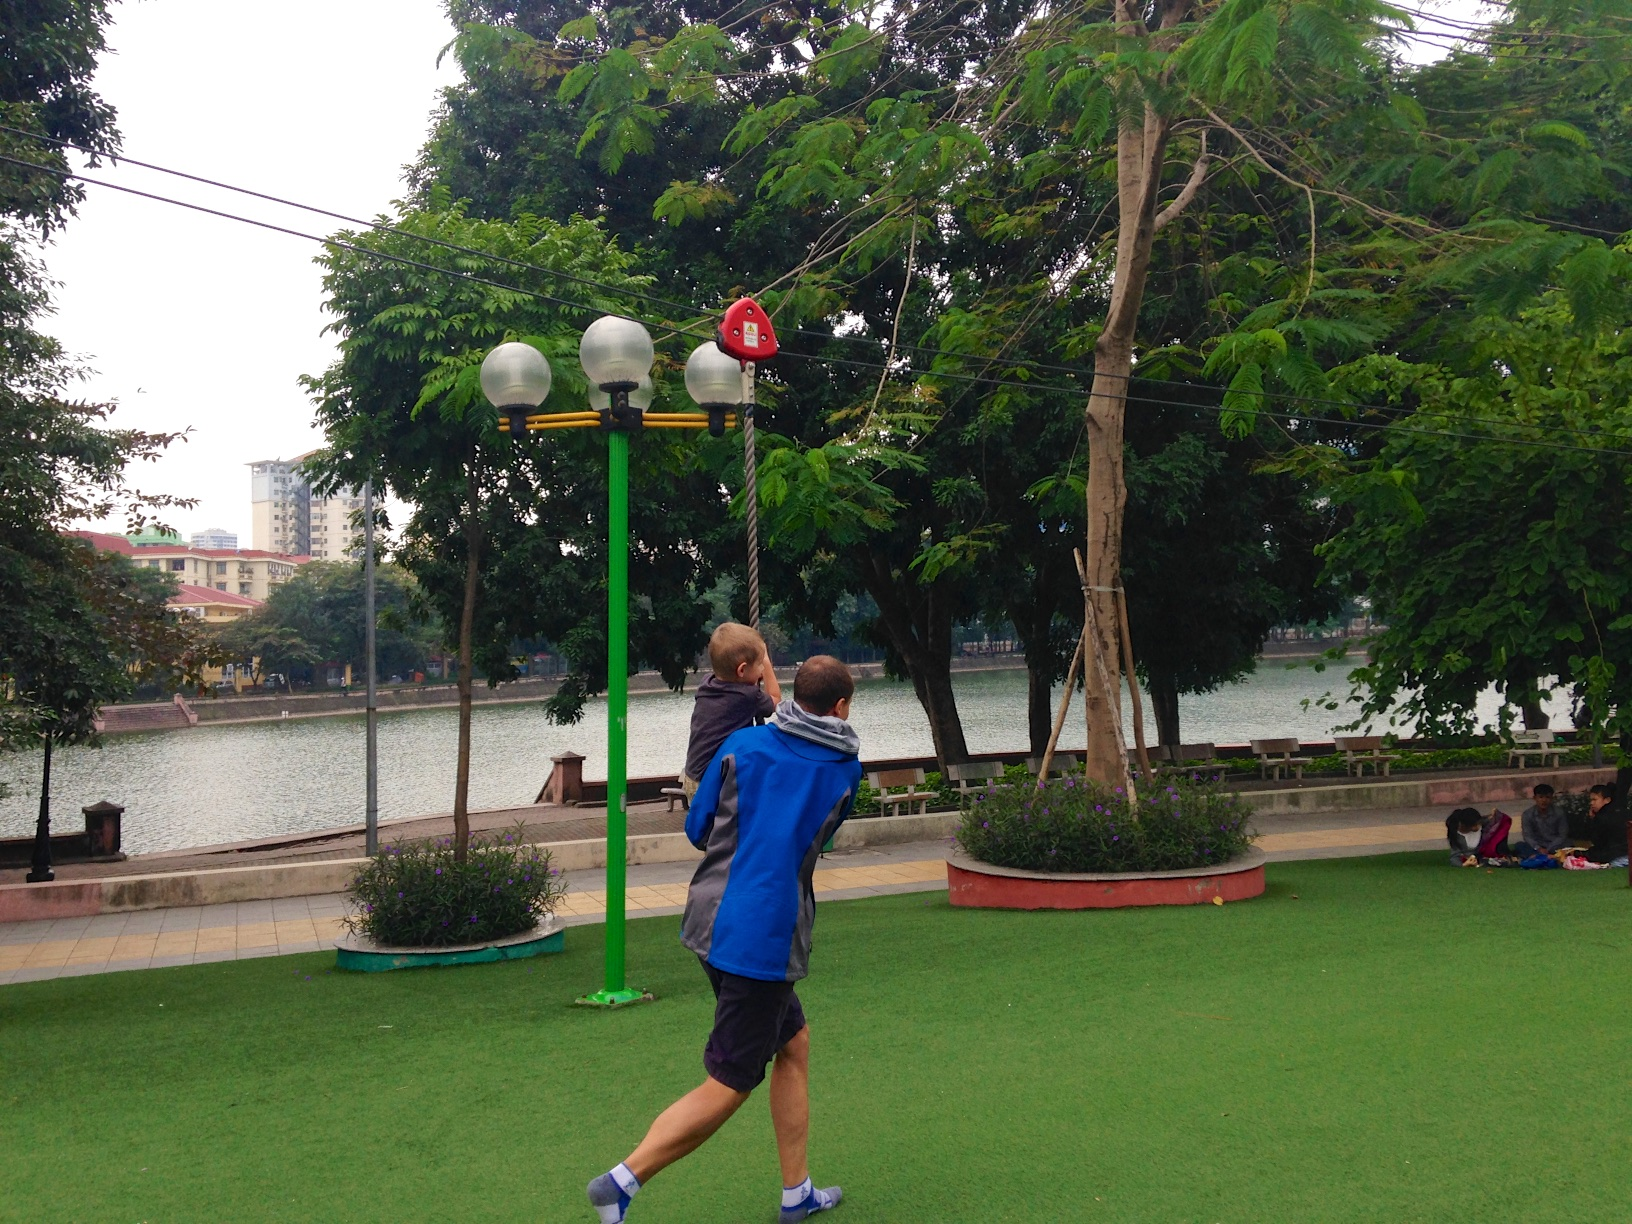 Cong Vien Nghia Do's Playground